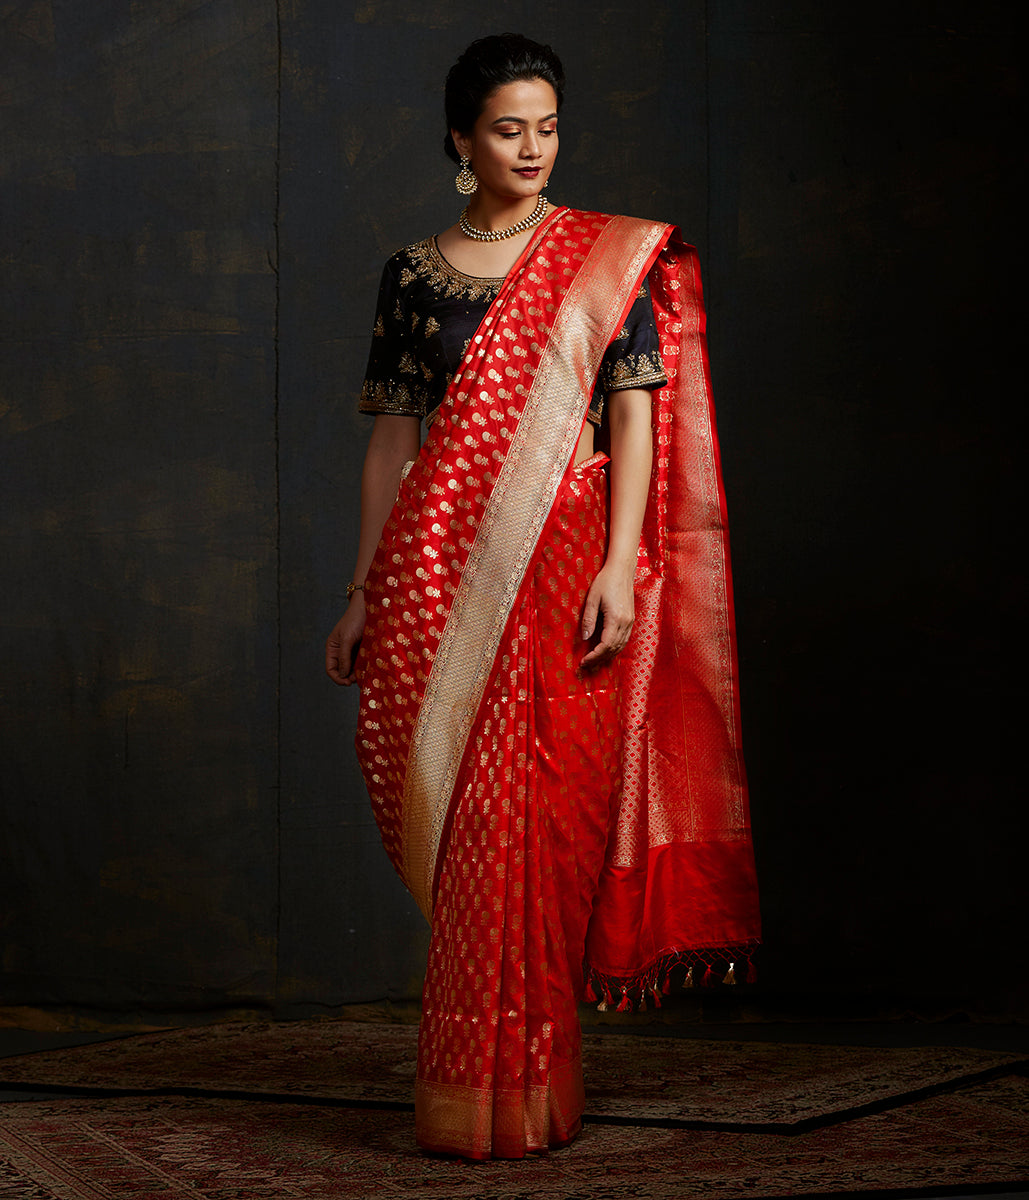 Red katan silk saree with small floral motifs and kadhwa border